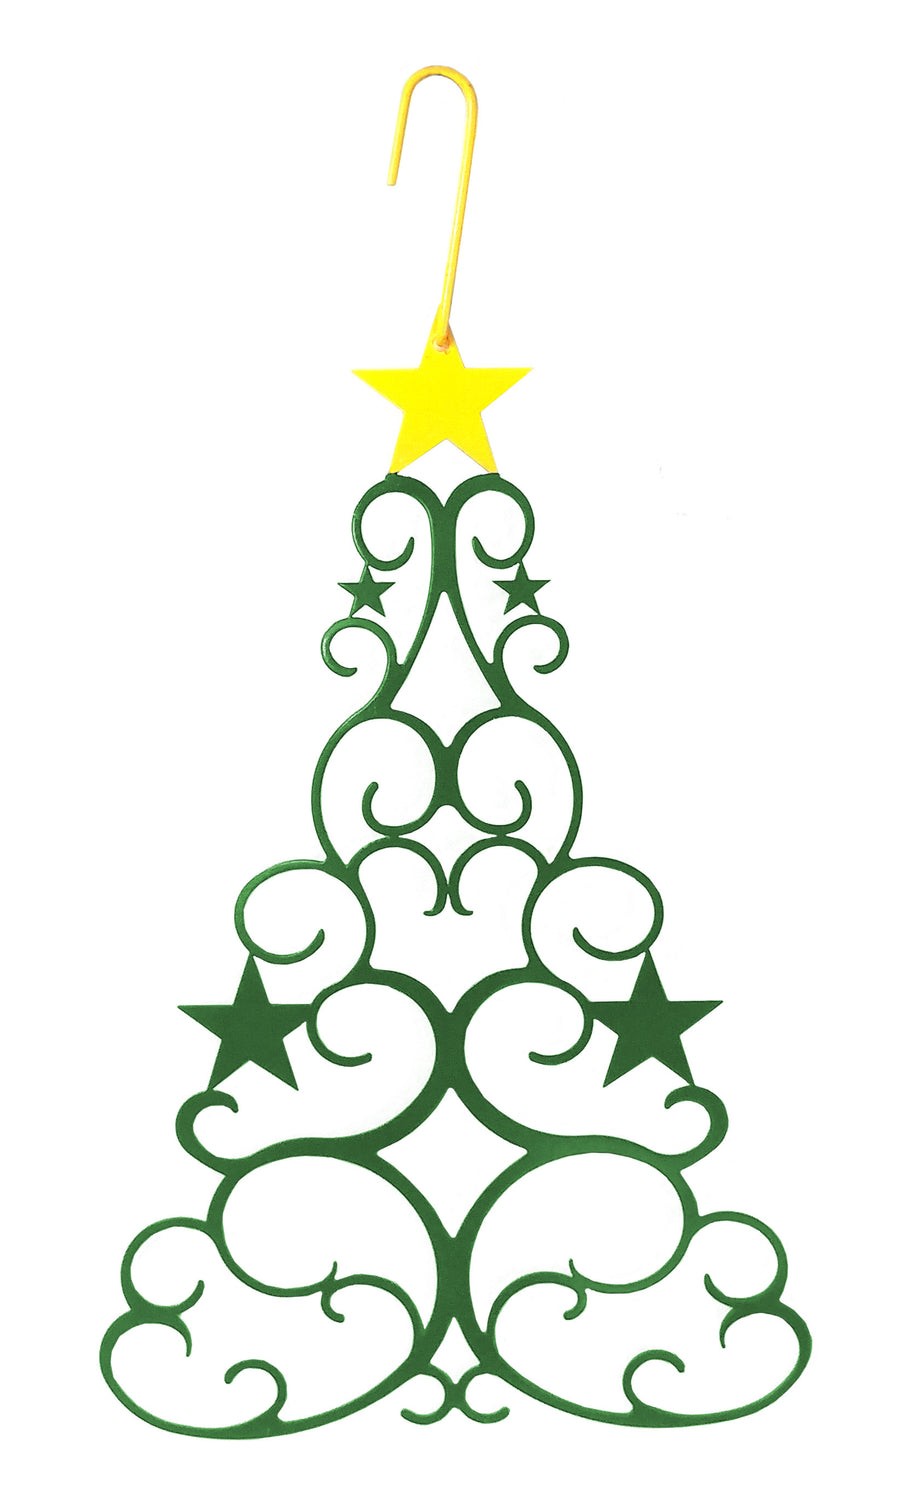 Wrought Iron 16 Inch Green Christmas Tree Hanging Silhouette